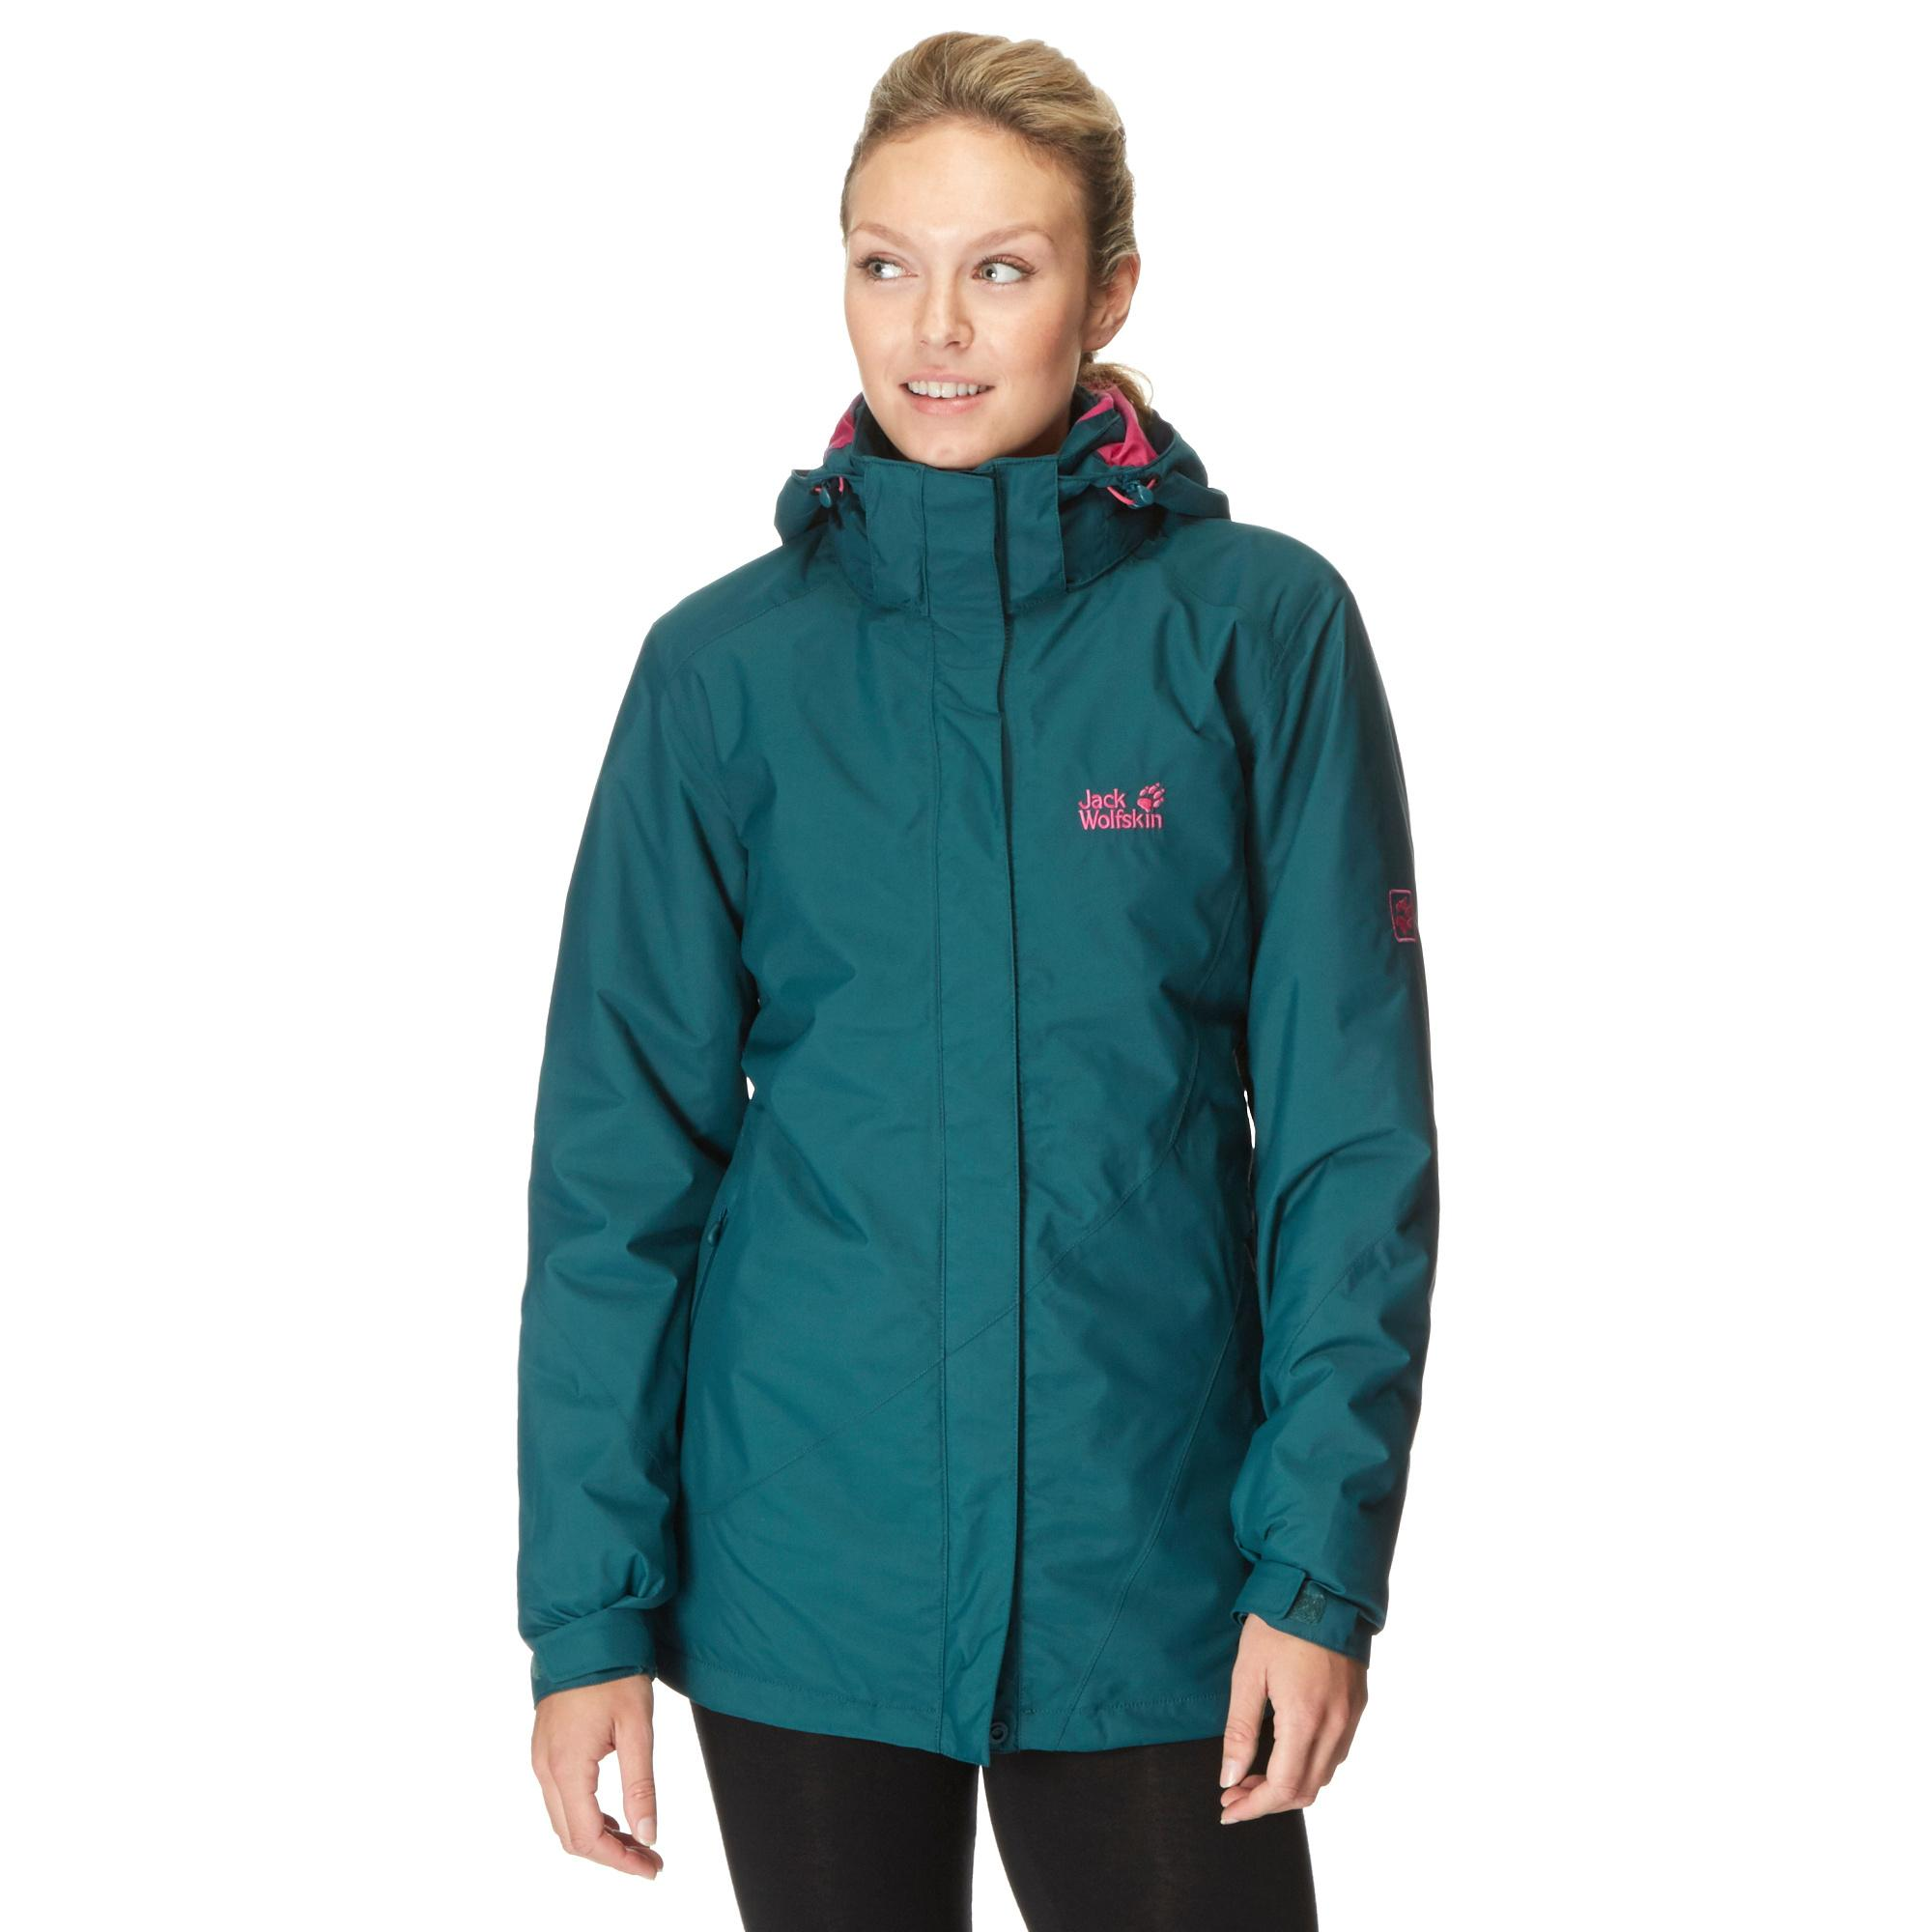 Jack Wolfskin Womens Arbourg 3 in 1 Texapore Hiking Jacket Green